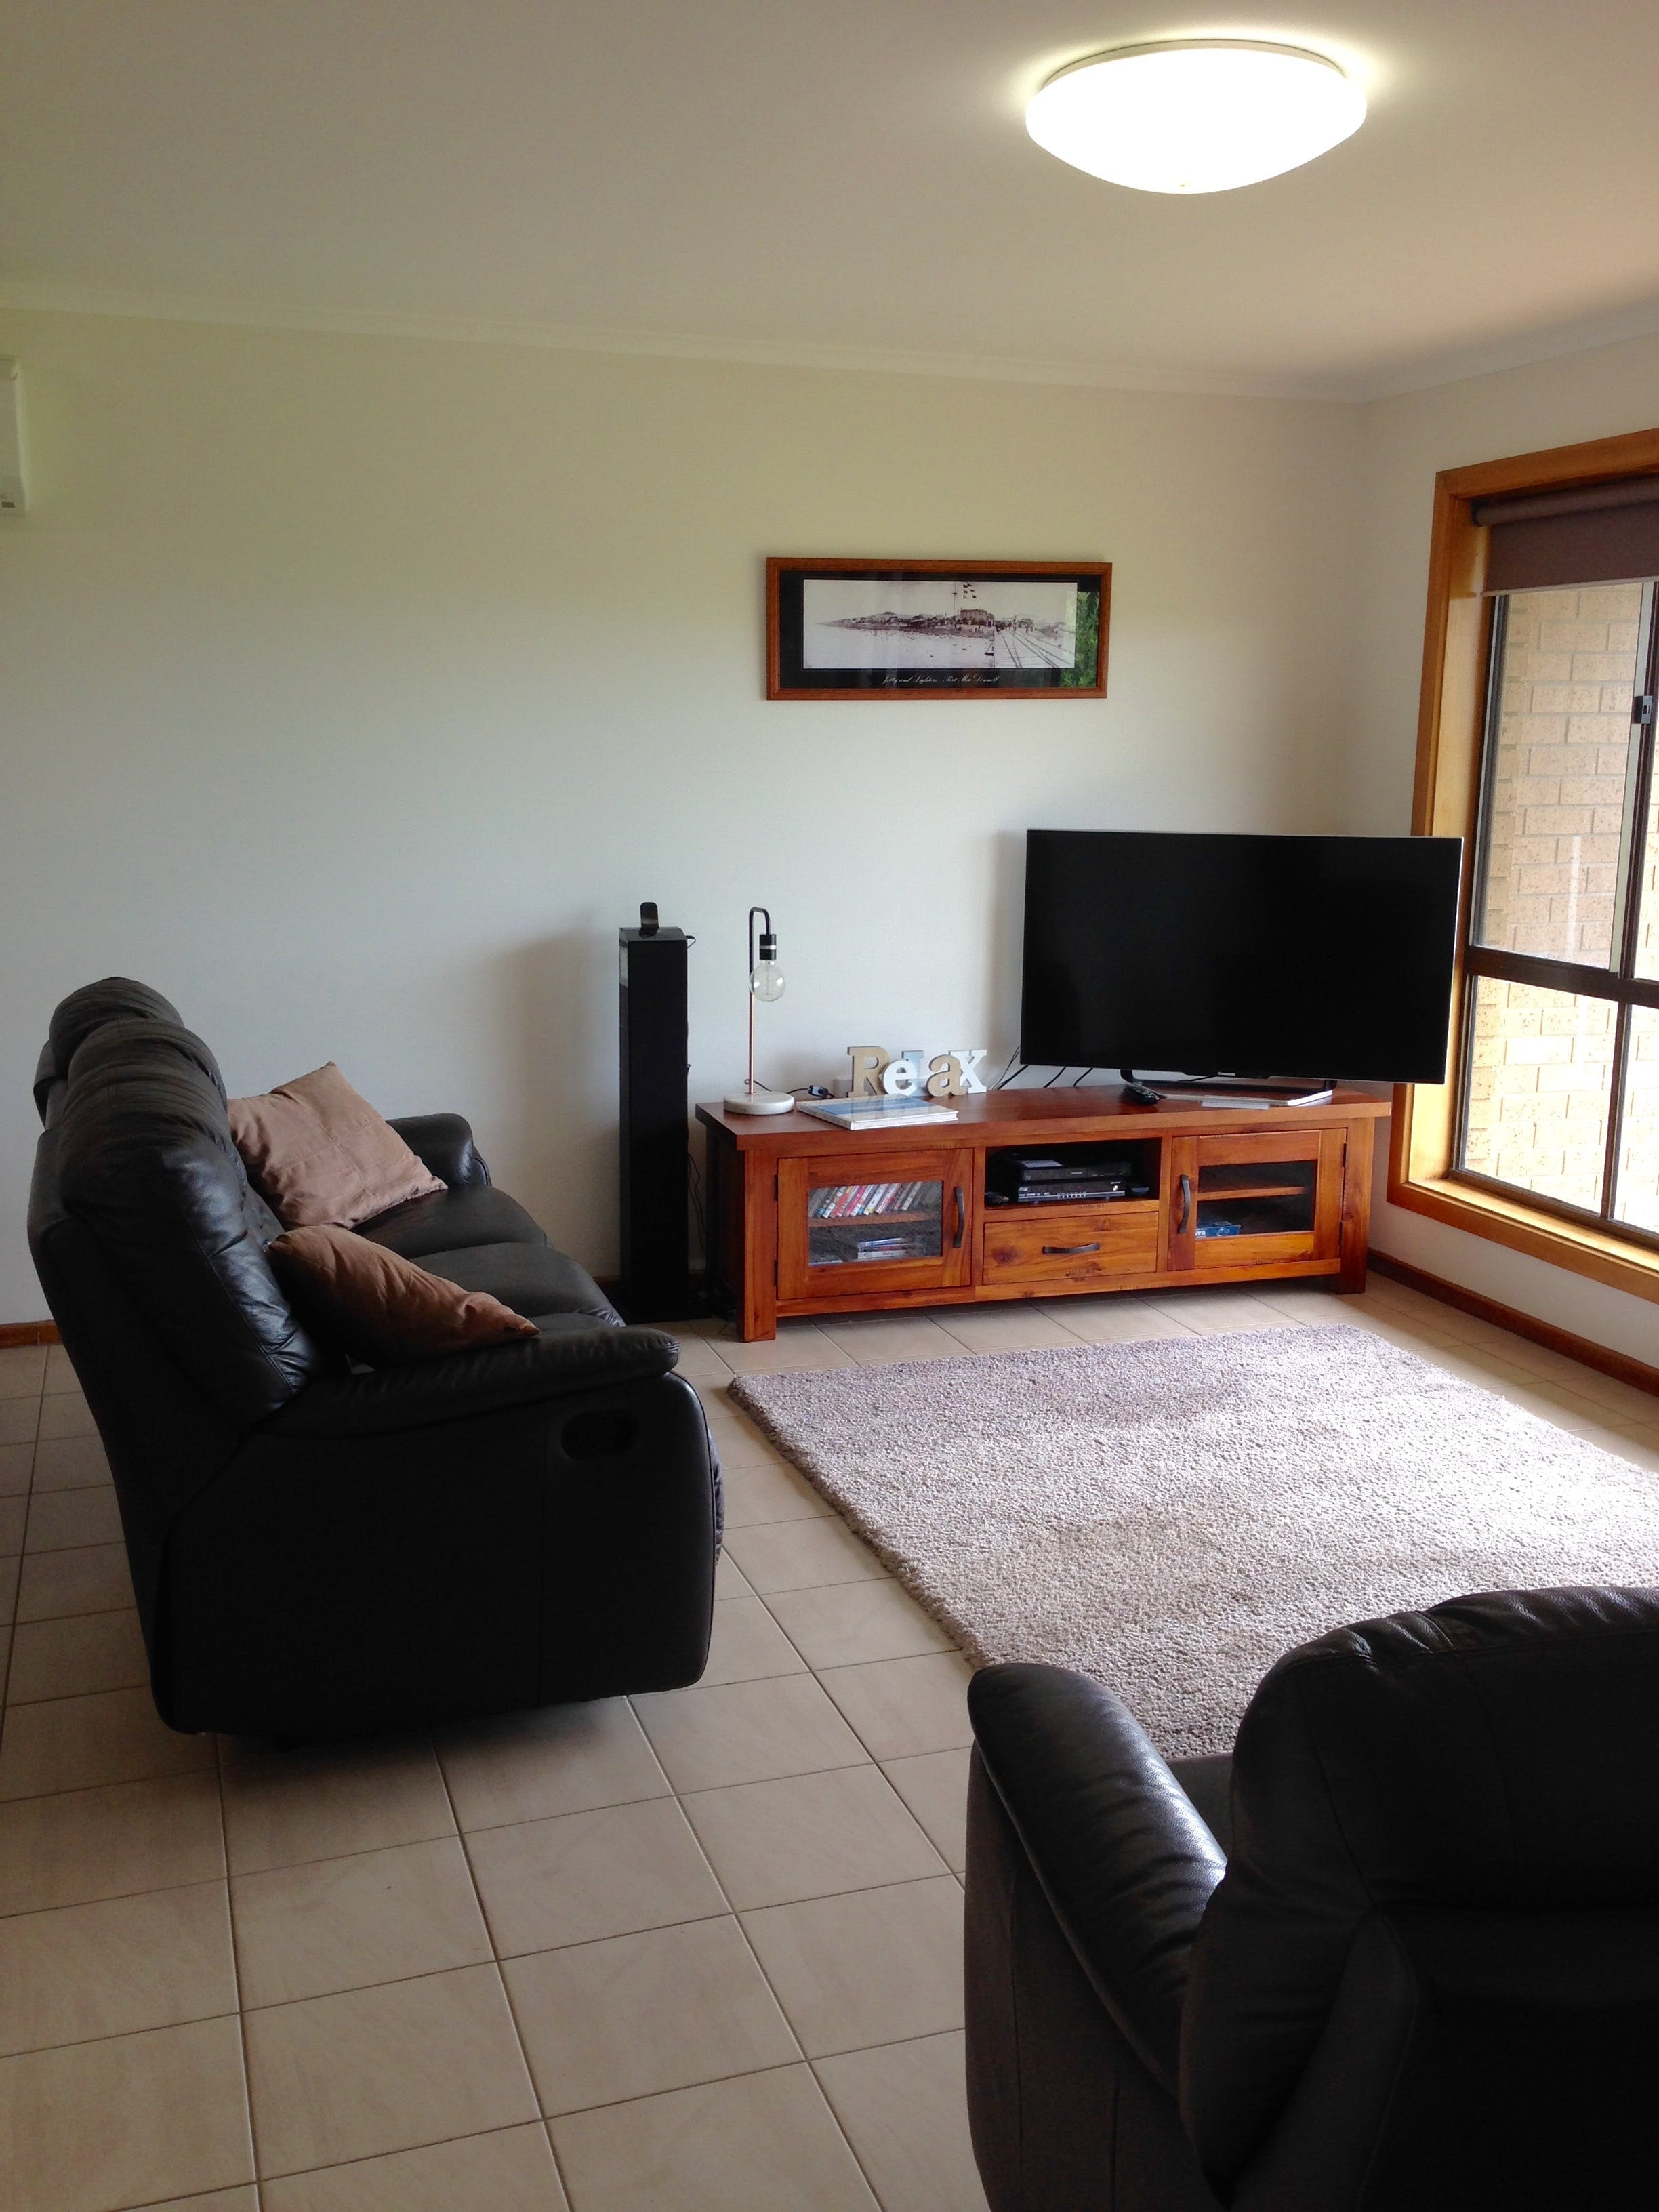 Springs Beach House - Tourism Brisbane